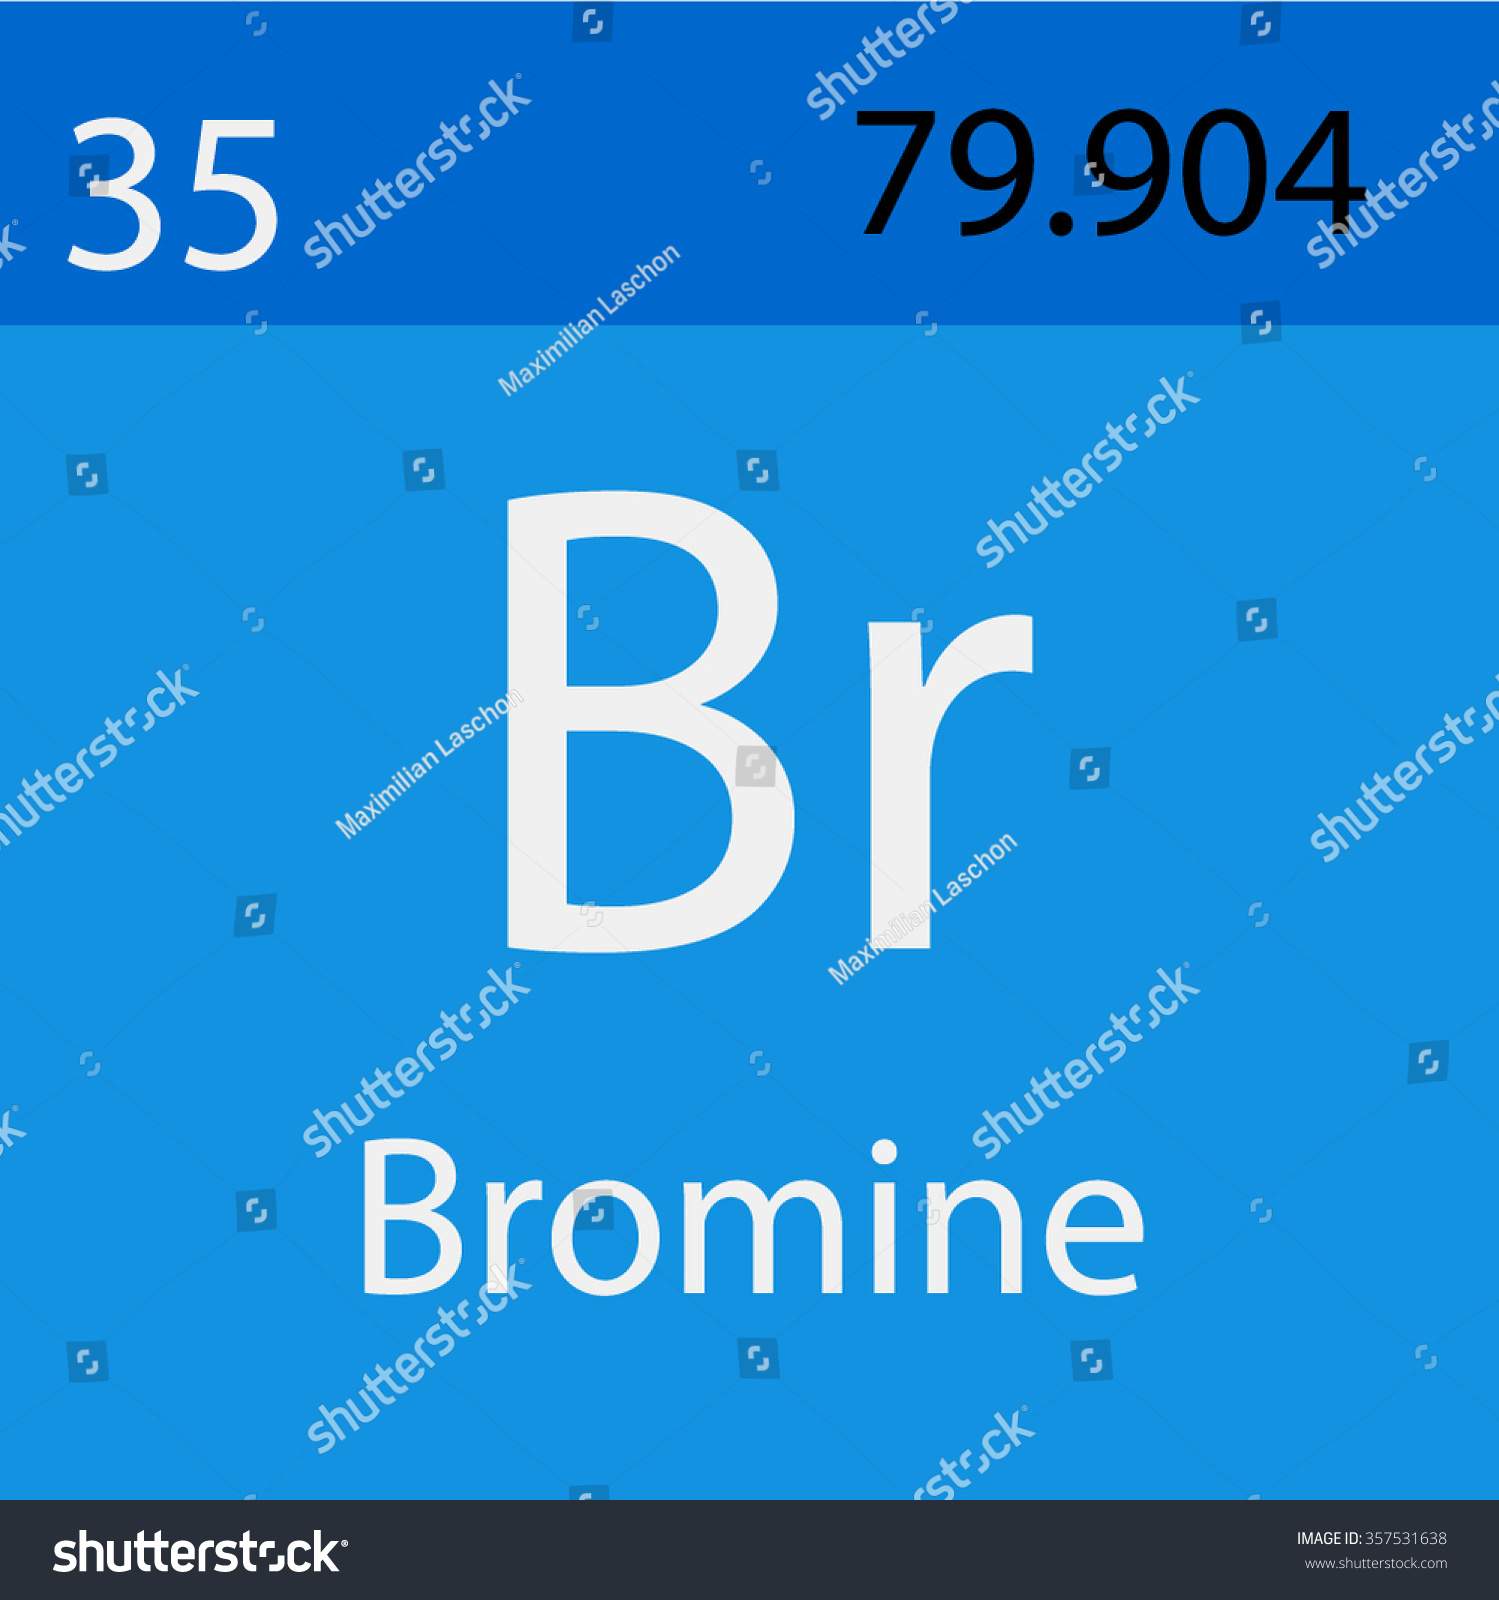 Bromine Chemical Symbol Stock Vector Royalty Free 357531638